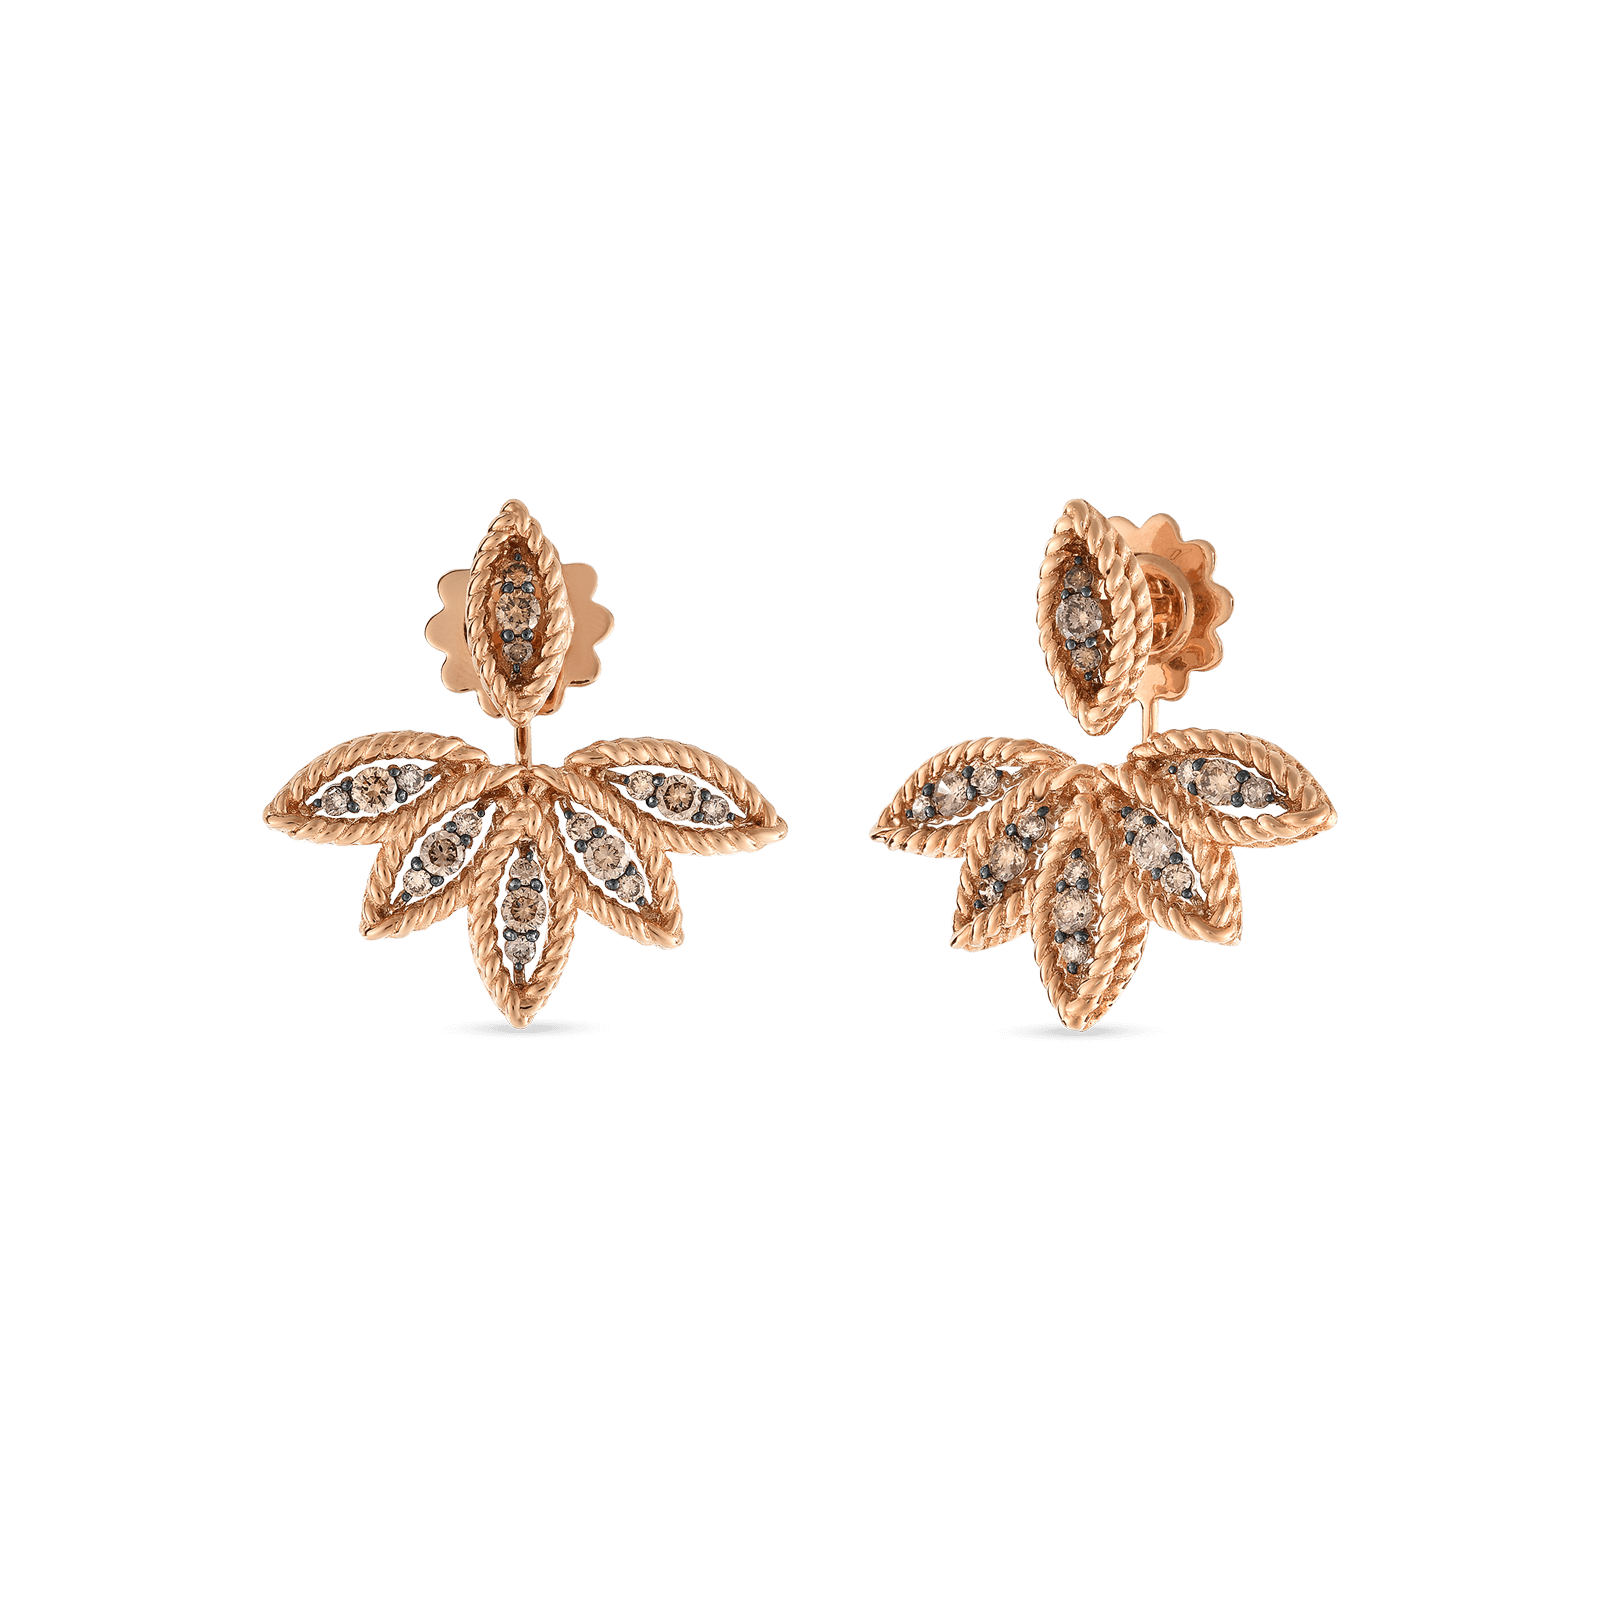 brown earrings inc j swirl a diamond fancy products stud